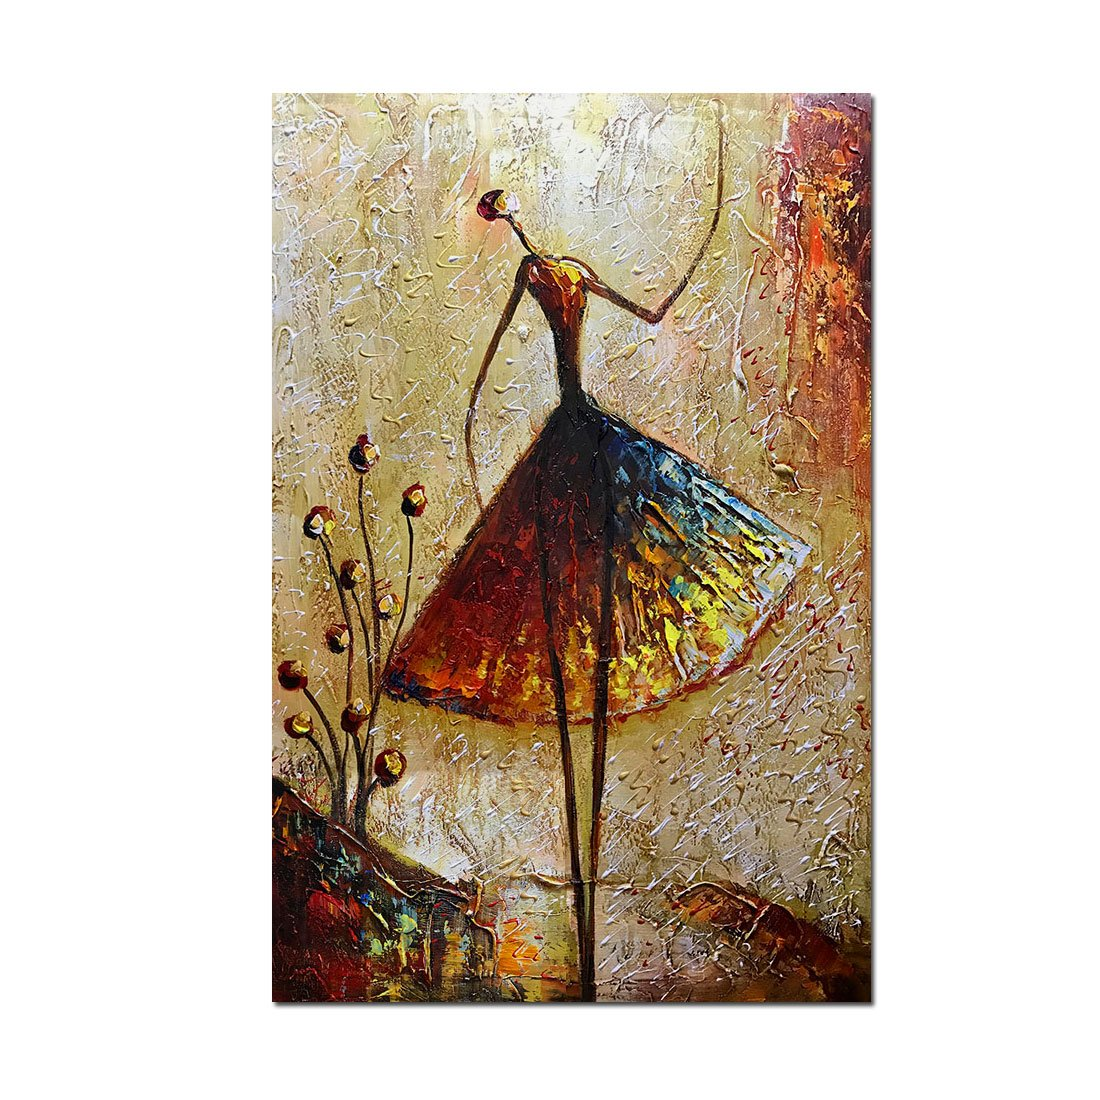 Charming Metuu Oil Paintings, Ballet Dancer Girl Paintings Modern Home Decor Wall  Art Painting Wood Inside Framed Hanging Wall Decoration Abstract Painting  Ready To ...